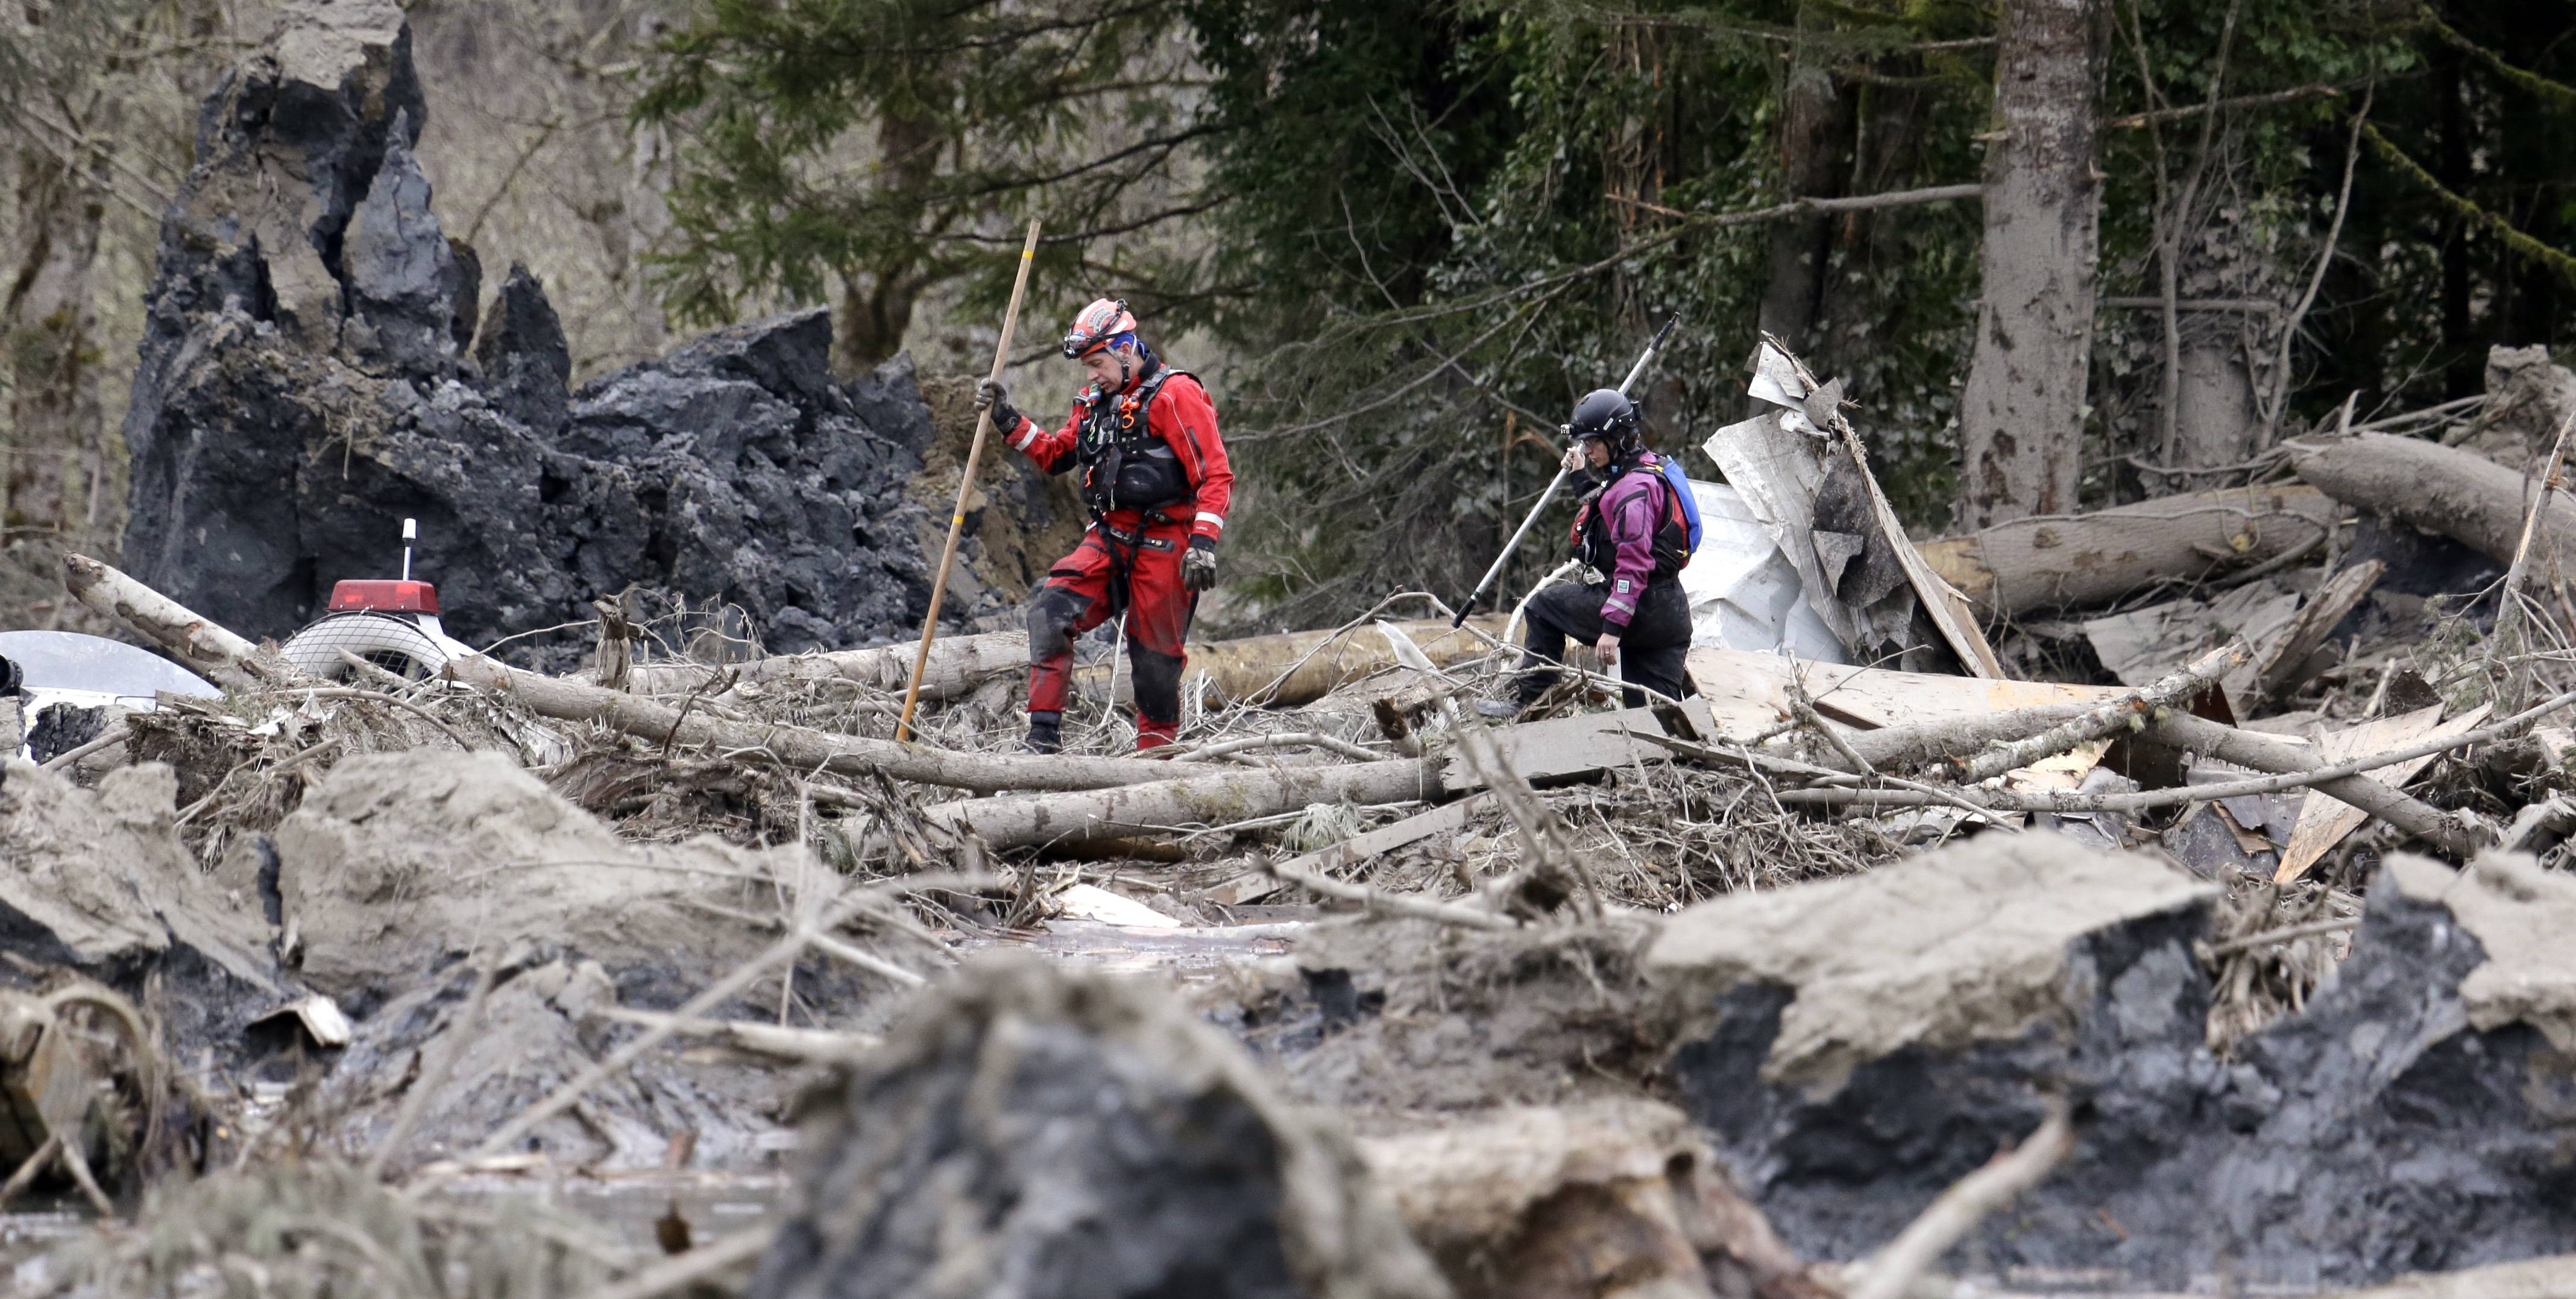 Searchers look through debris from a deadly mudslide Tuesday in Oso, Wash. At least 16 people were killed in the 1-square-mile slide that hit in a rural area about 55 miles northeast of Seattle on Saturday. Several people also were critically injured, and homes were destroyed.